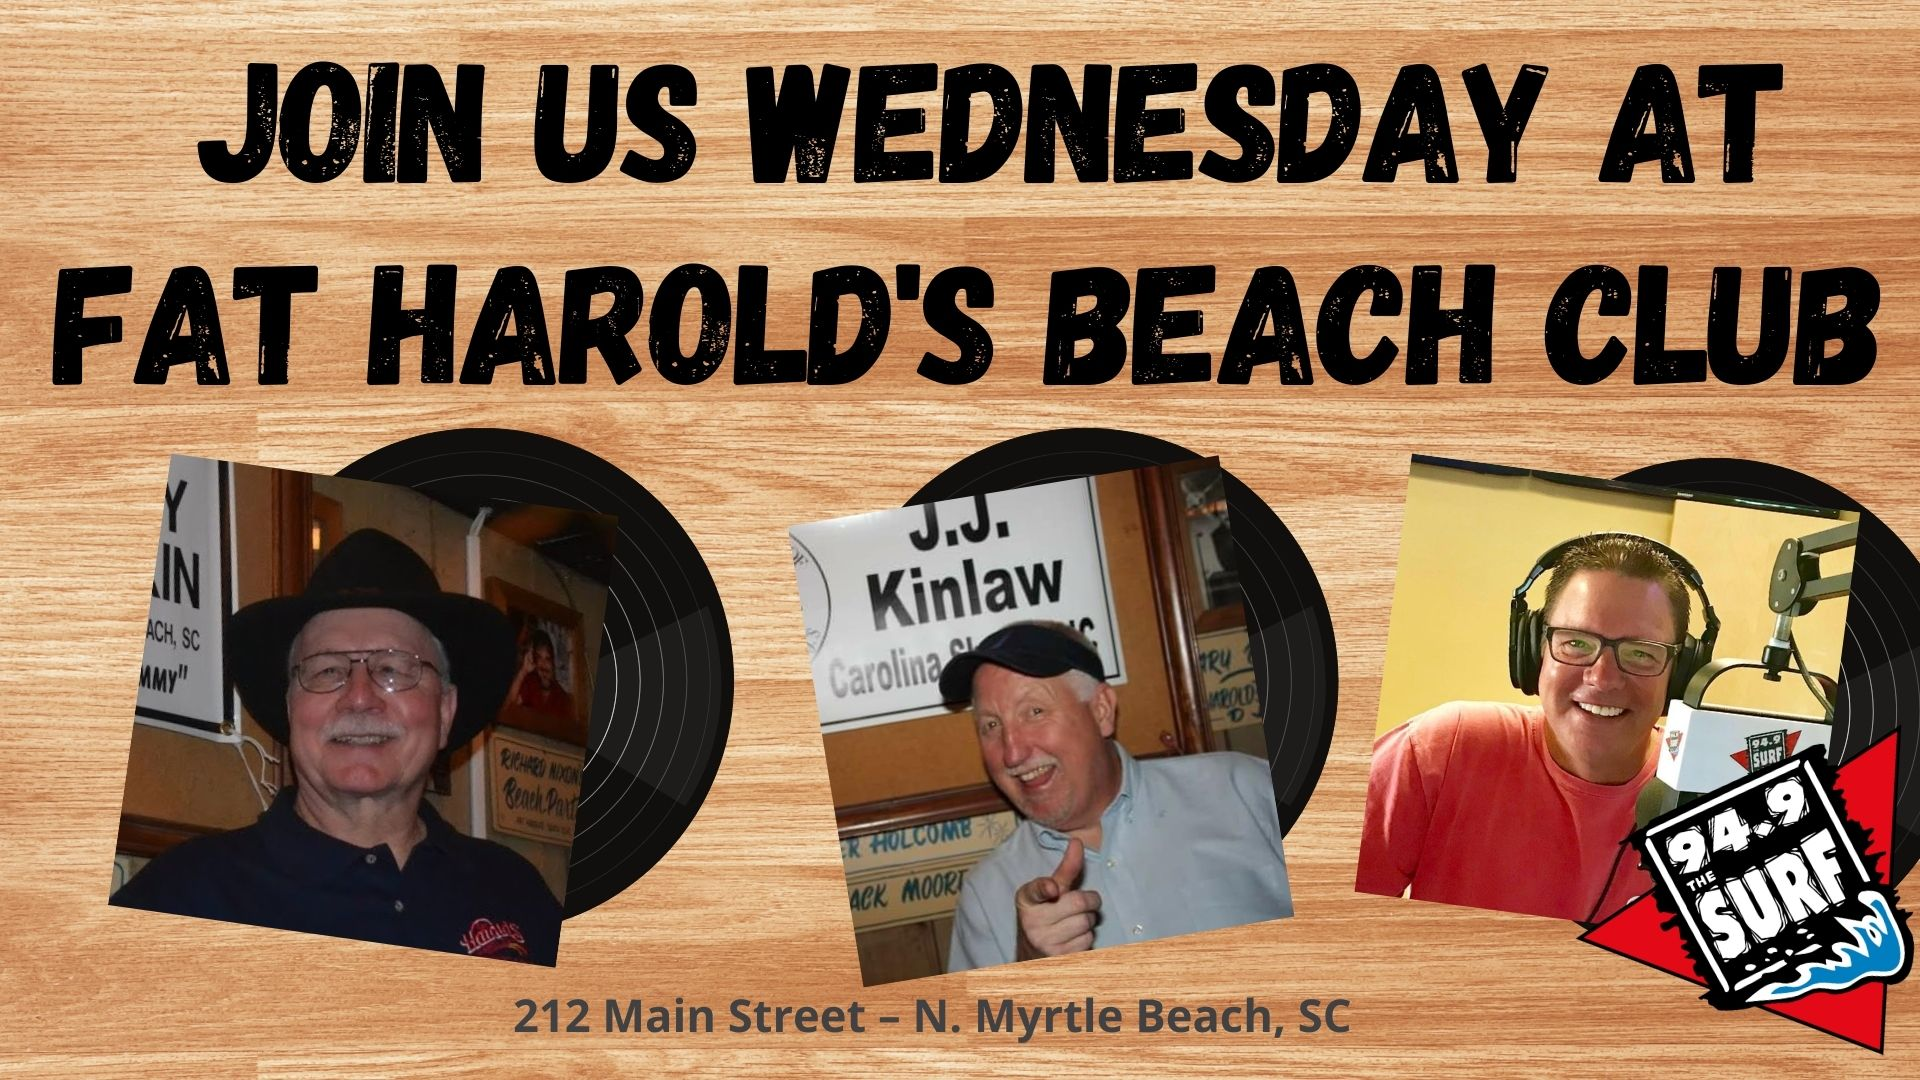 Wednesday at Fat Harold's